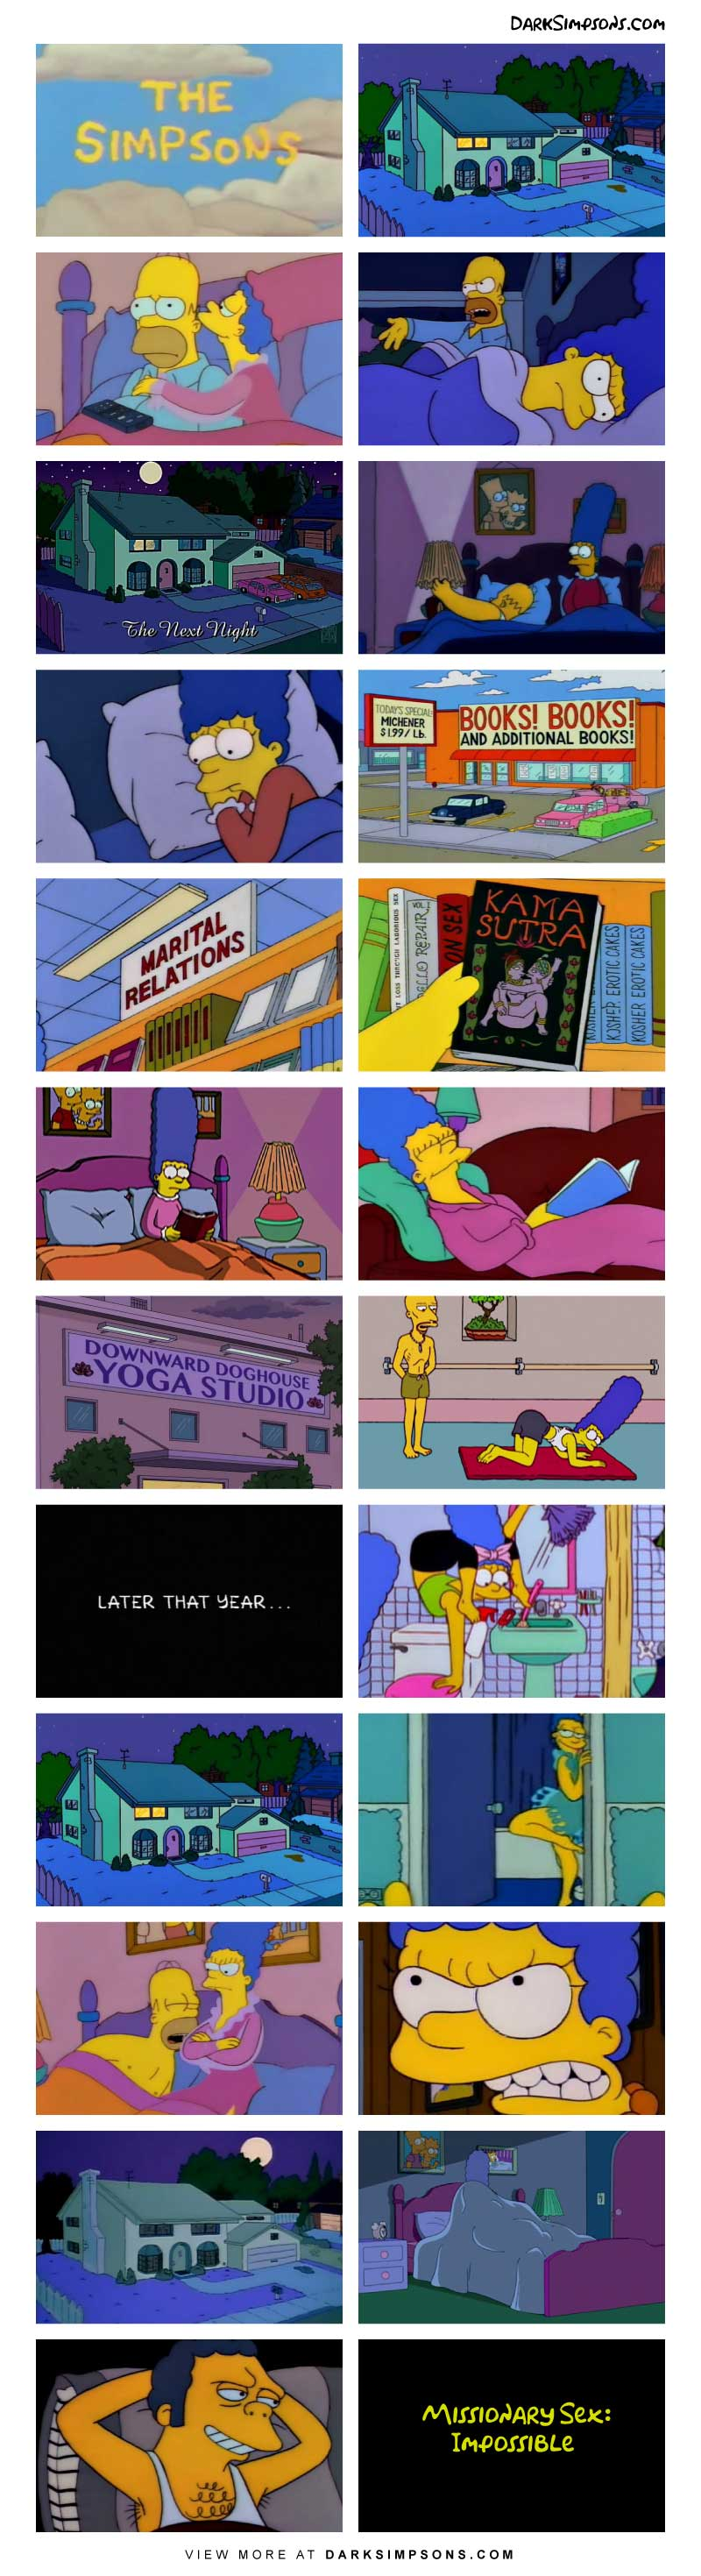 The spark has fallen out of Homer and Marge's sex life, but Marge has a plan to fix it and it involves yoga, hard work and the Kama Sutra. She is going to master the book of love and then Homer will have to accept her love!